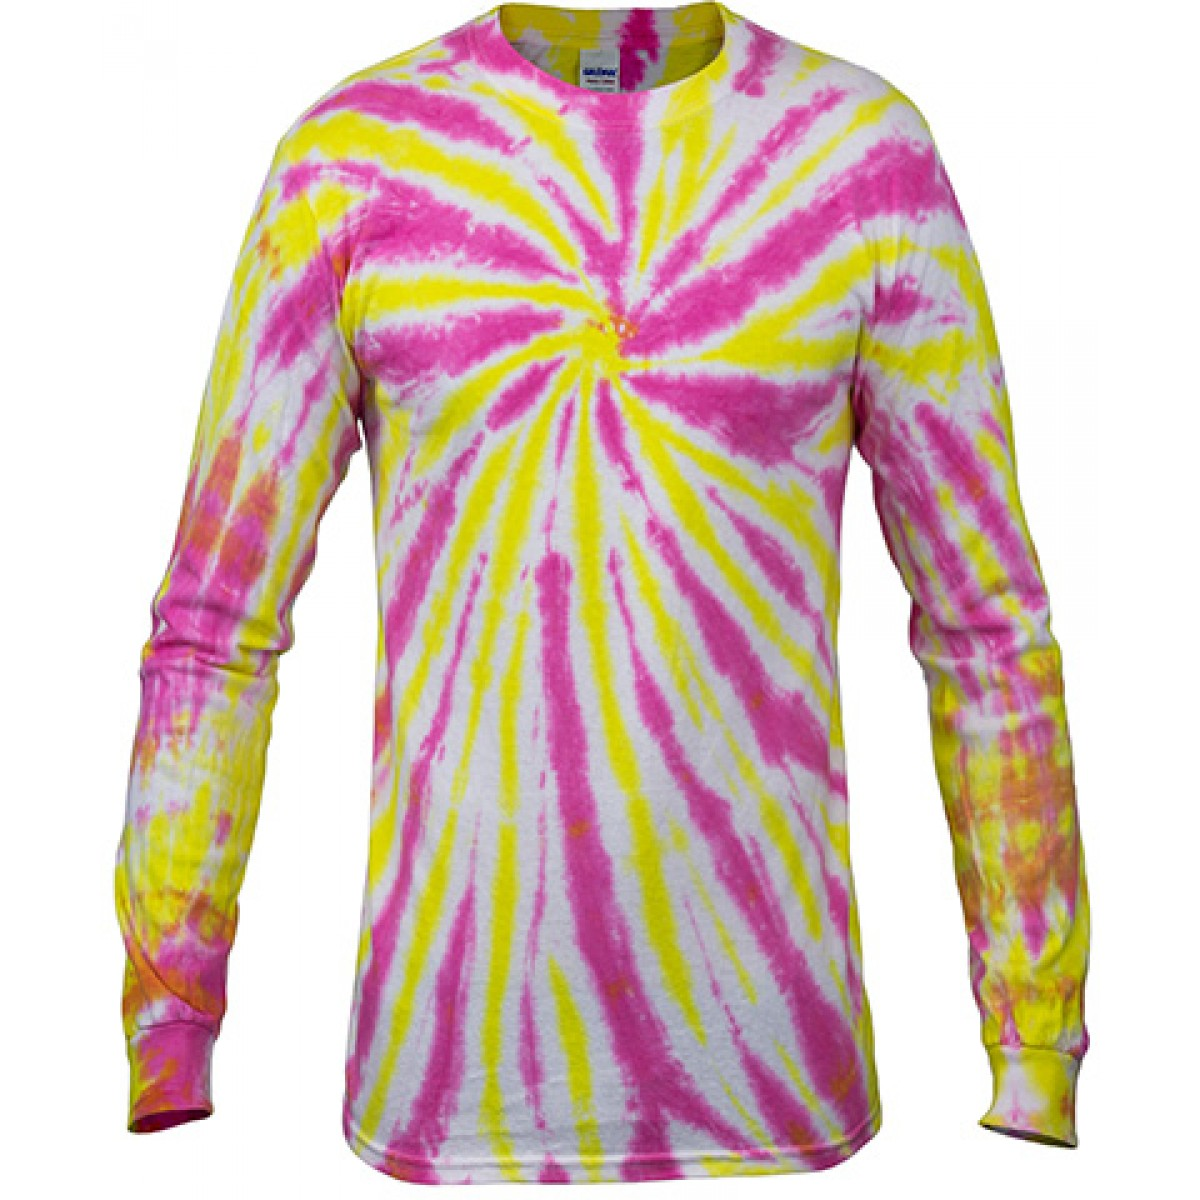 Multi Color Tie-Dye Long Sleeve Shirt -Pink-YL